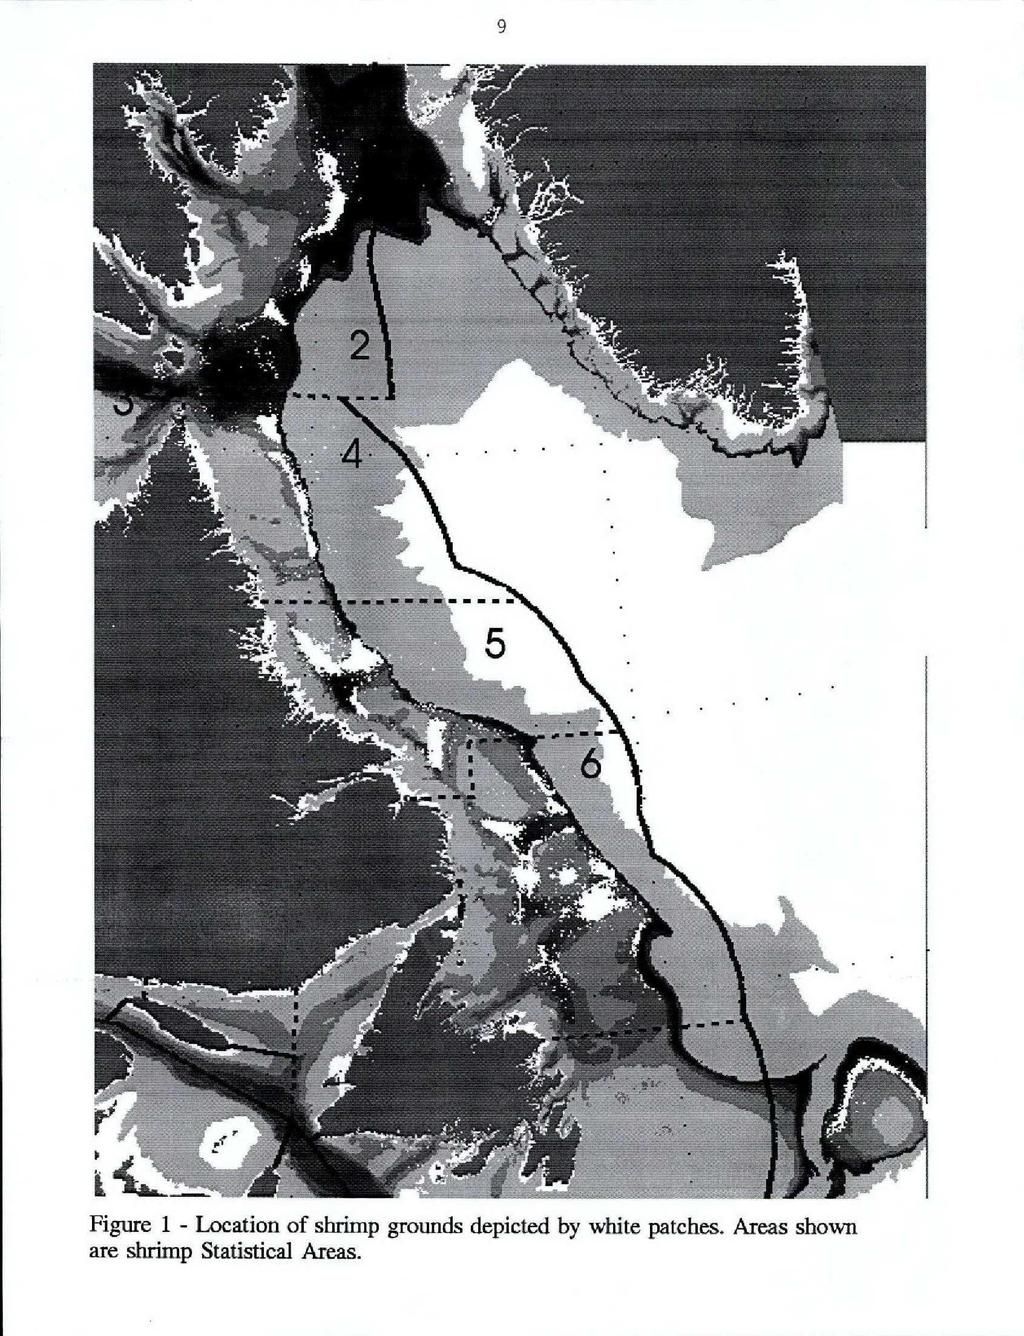 Figure 1 - Location of shrimp grounds depicted by